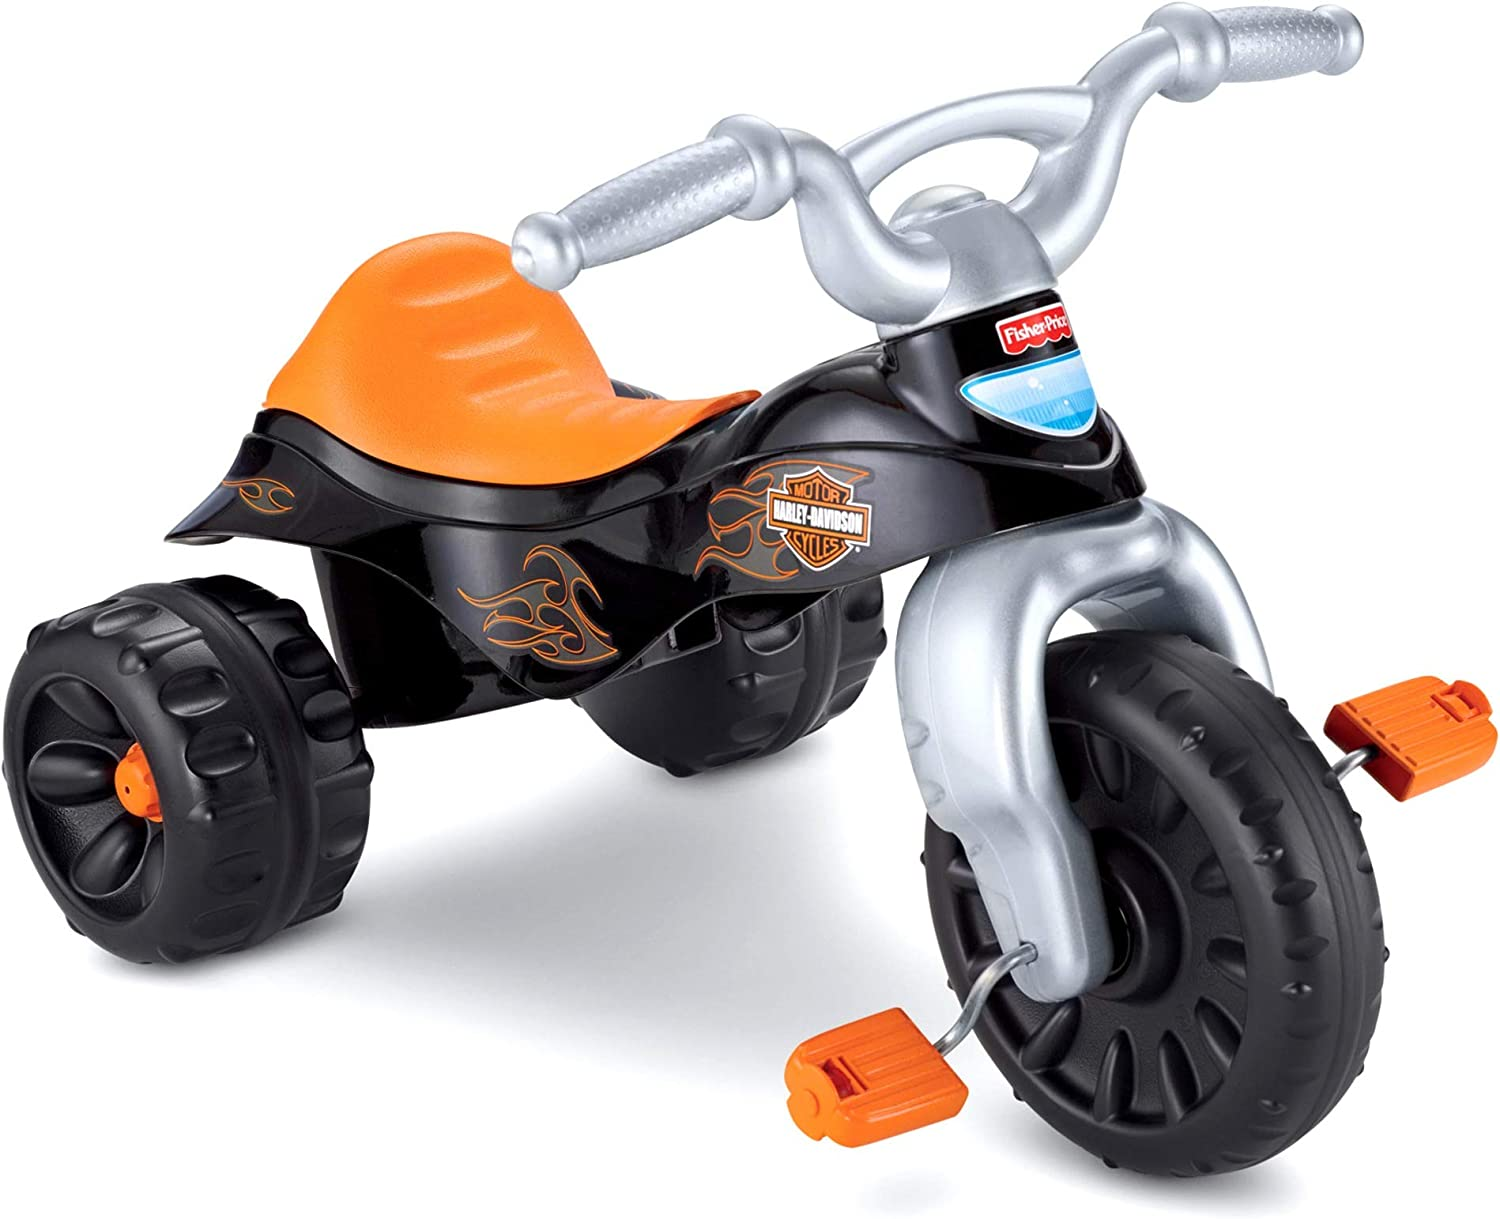 Best Tricycle for Toddlers: Fisher-Price Harley-Davidson Tough Trike